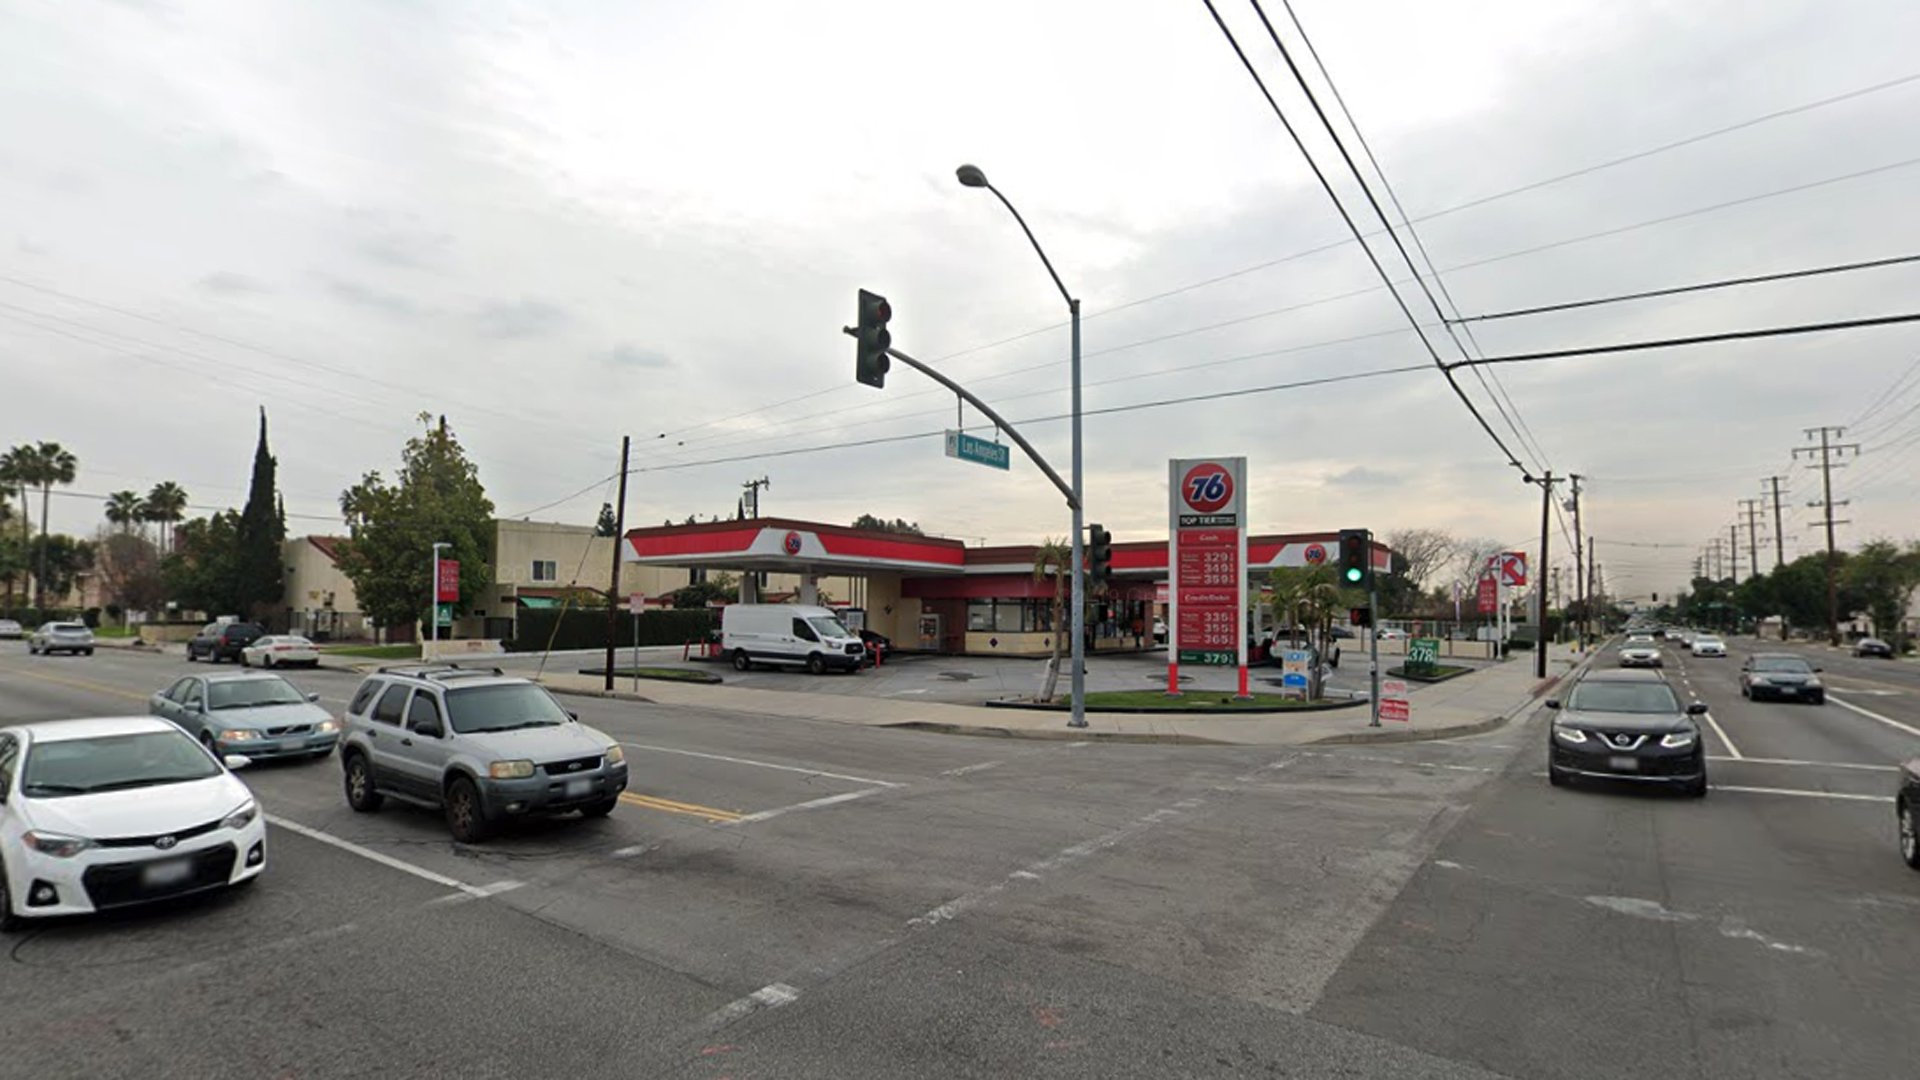 A 76 Station in the 13700 block of Los Angeles Street in Baldwin Park, as viewed in a Google Street View image.